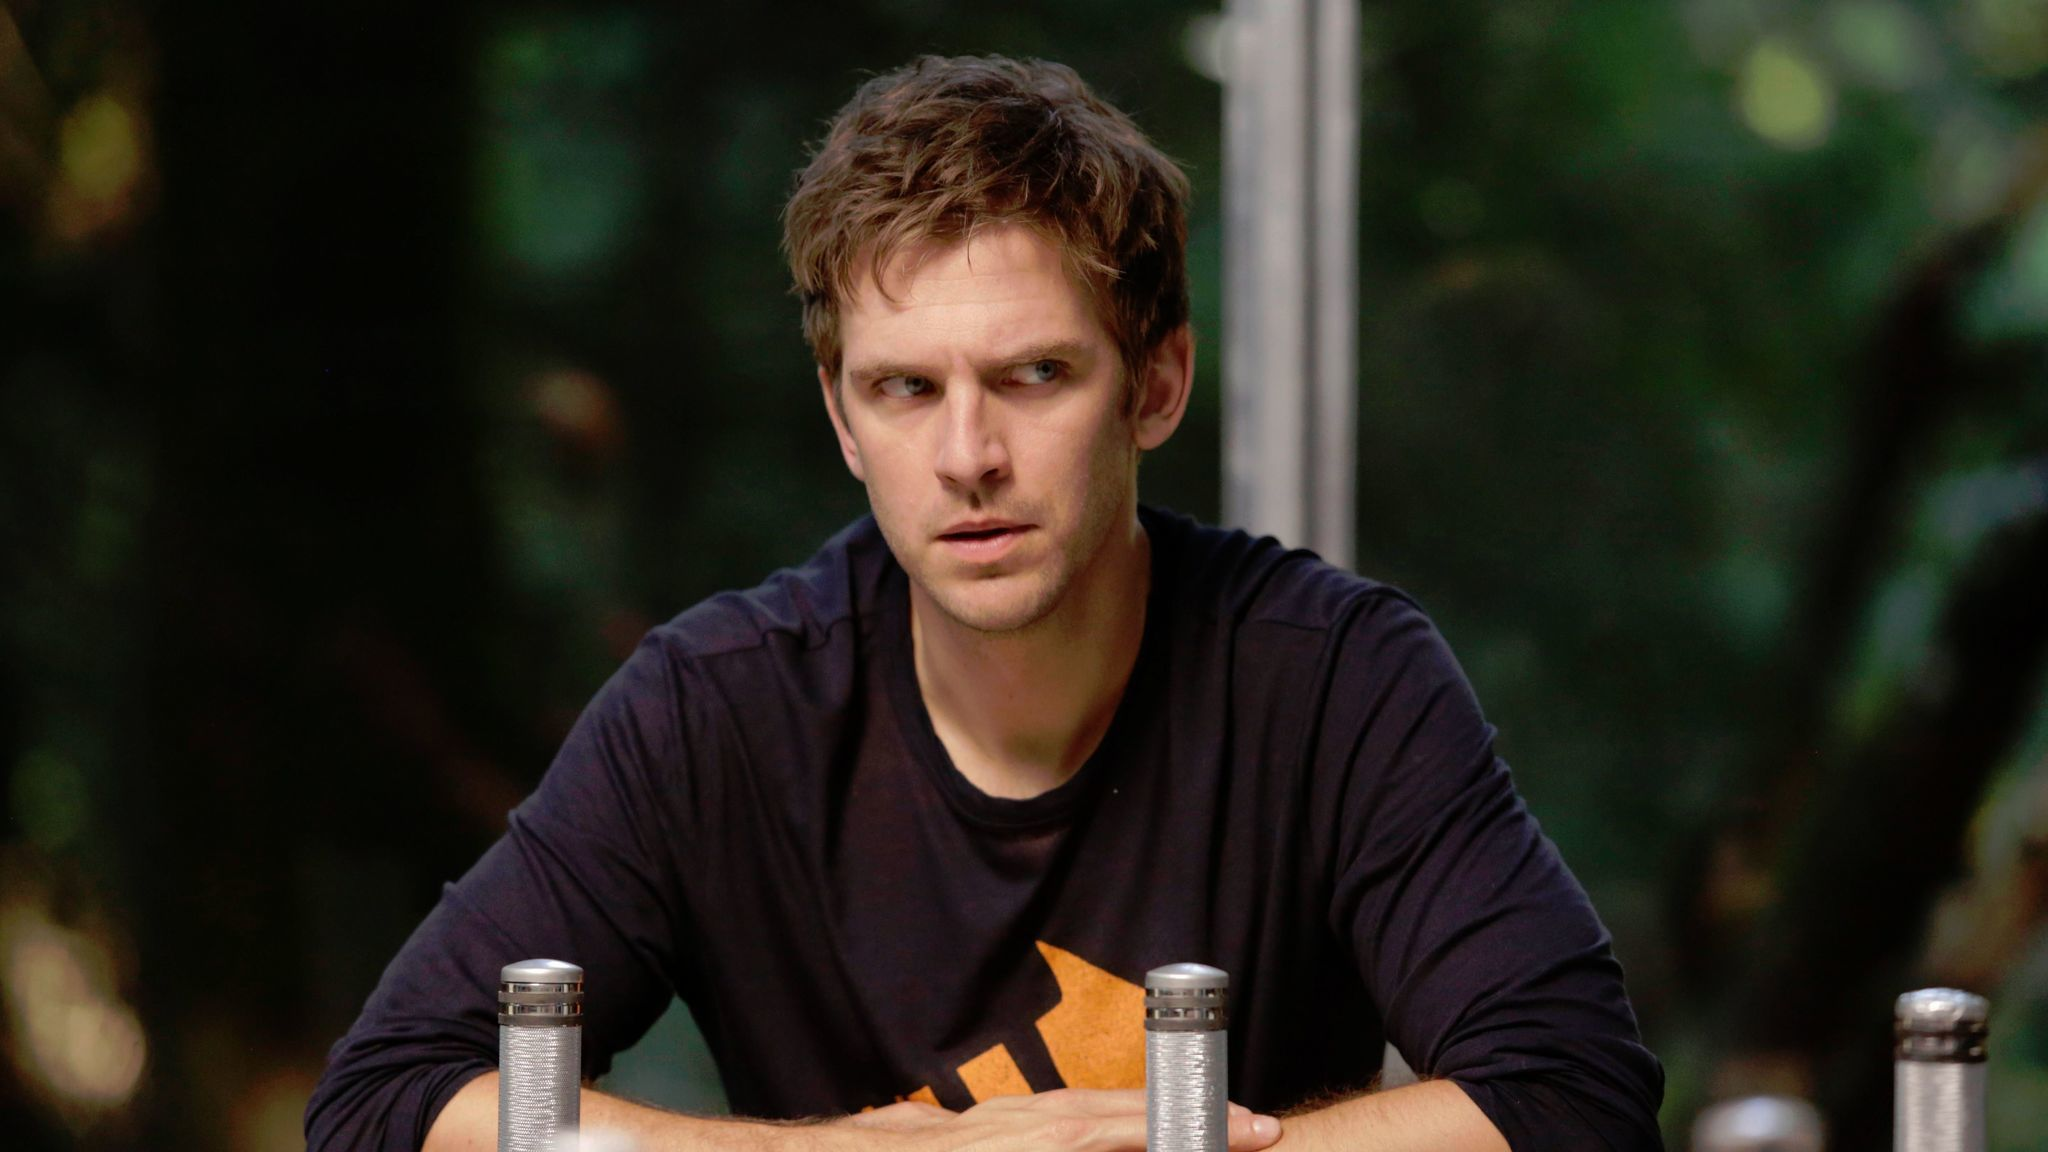 """LEGION -- """"Chapter 3"""" - Season 1, Episode 3 (Airs Wednesday, February 22, 10:00 pm/ep) -- Pictured: Dan Stevens as David Haller. CR: Michelle Faye/FX"""